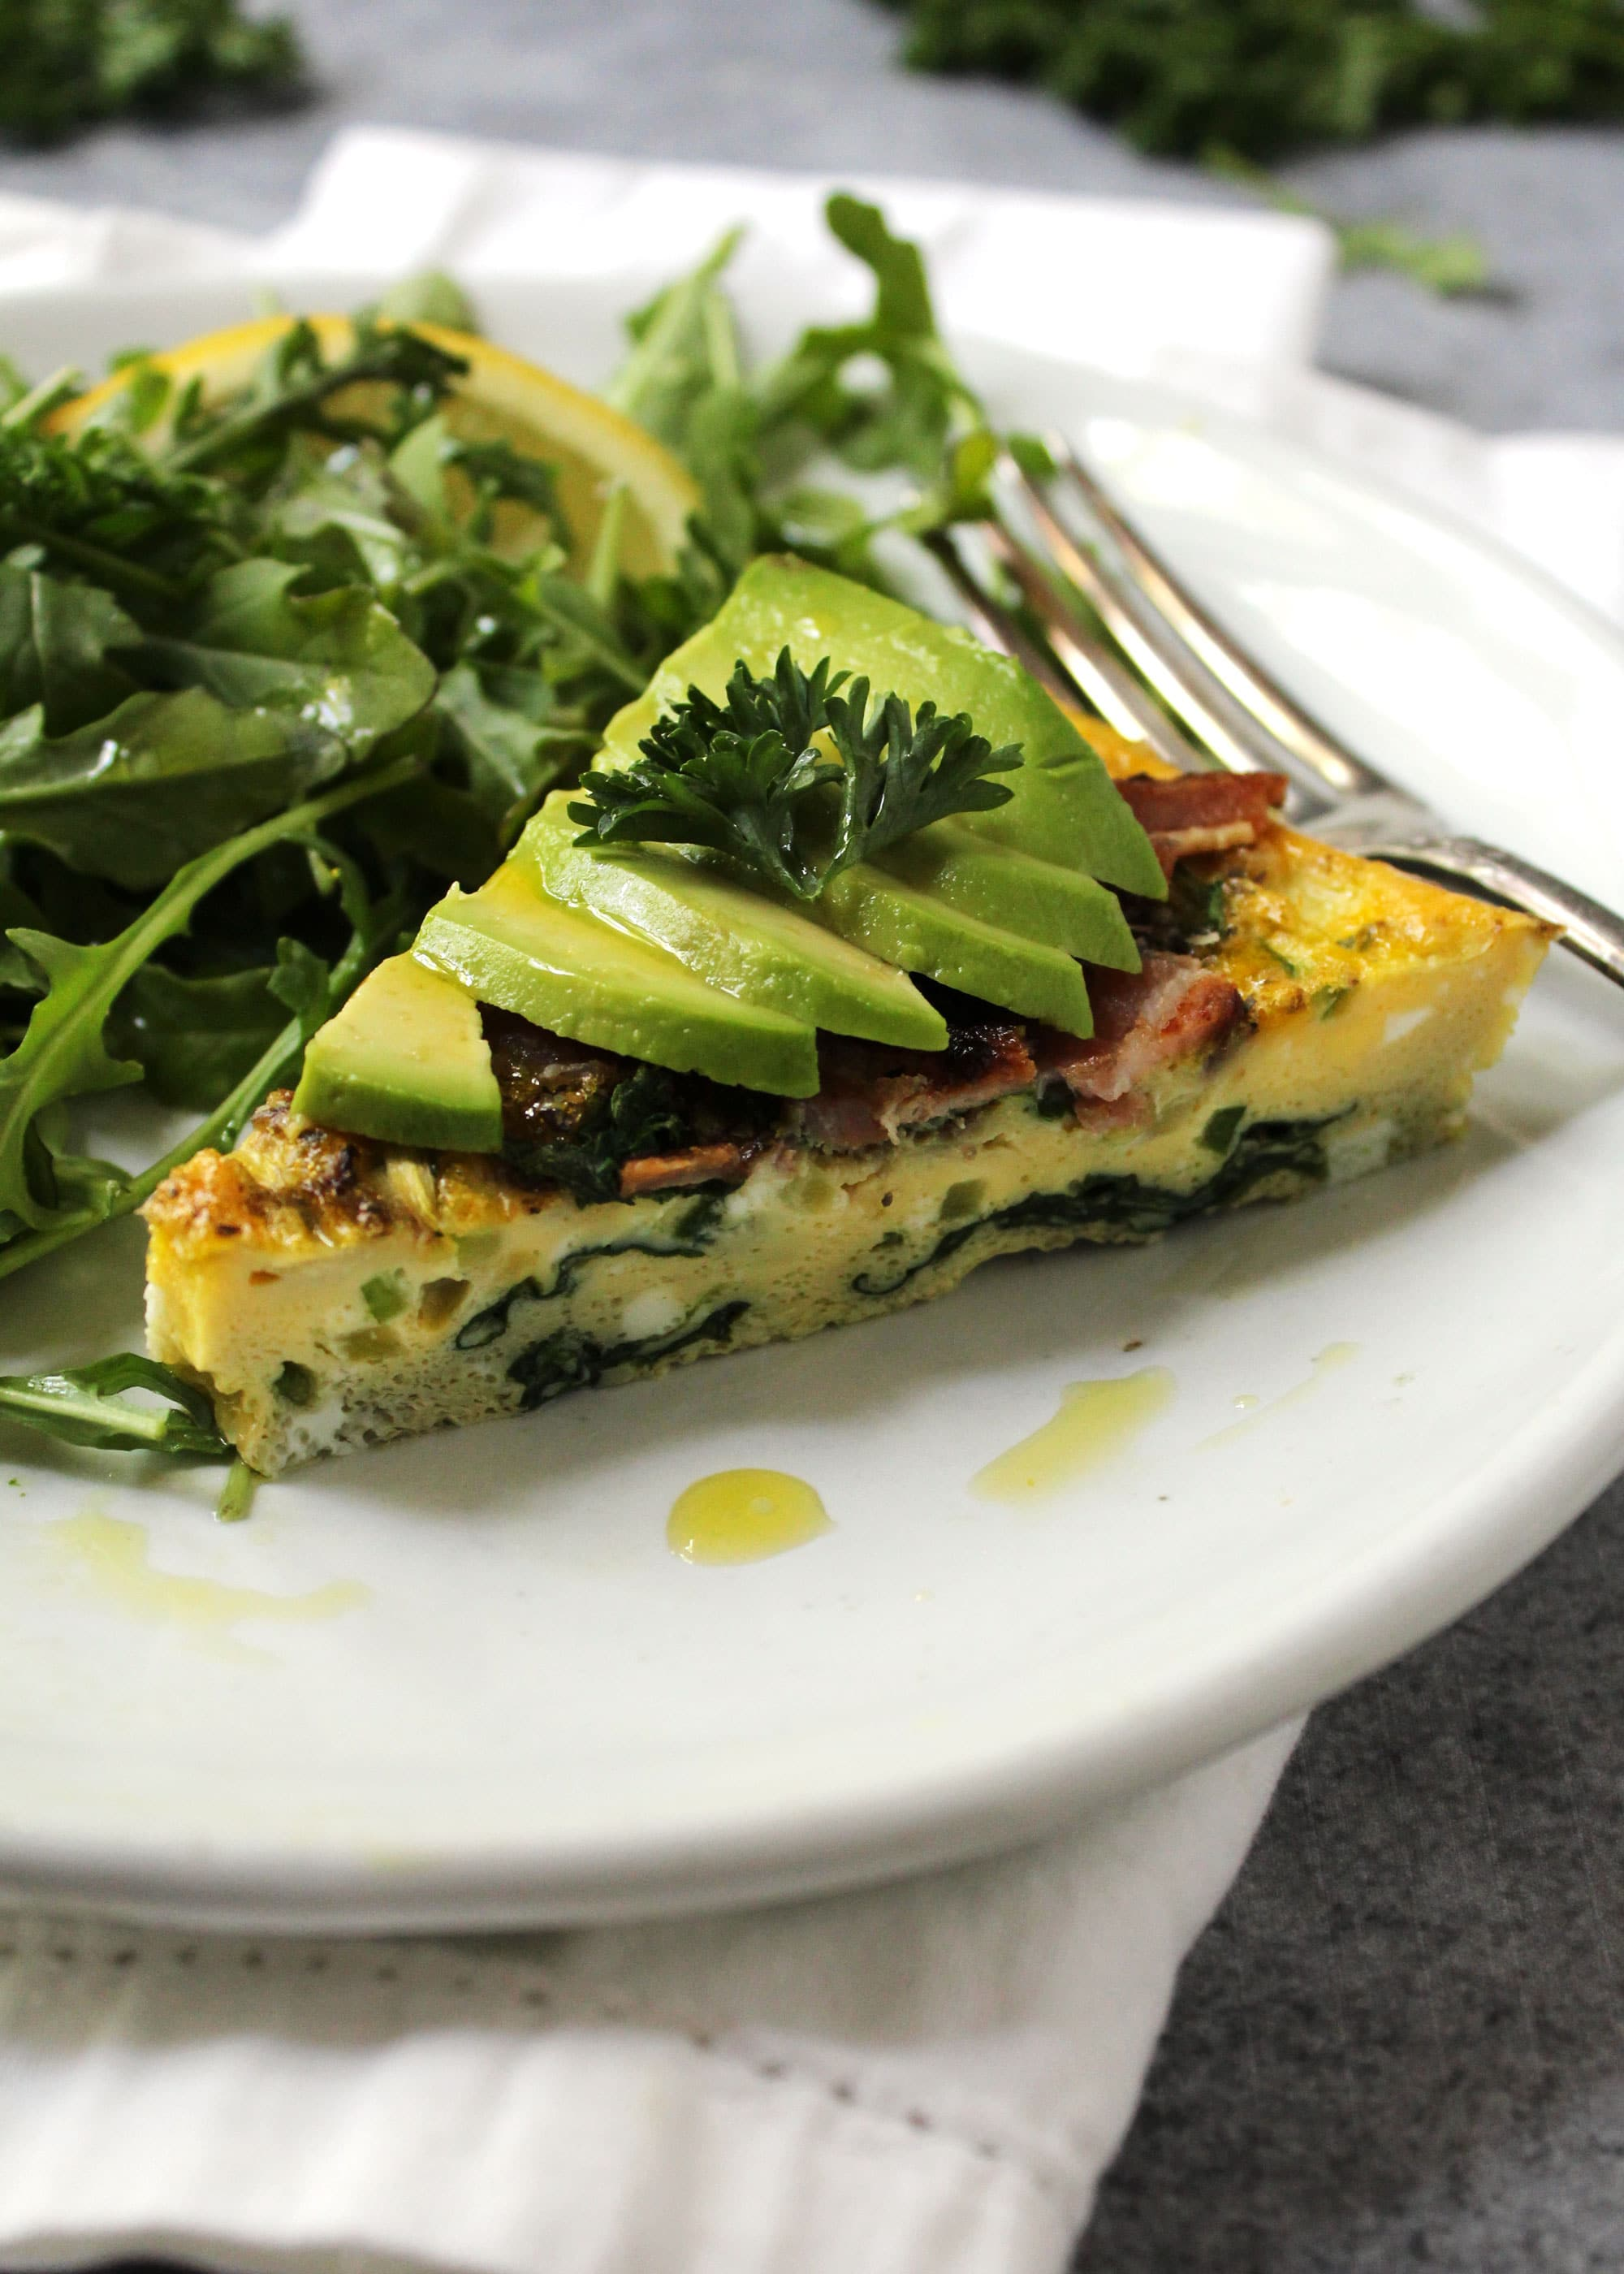 California frittata topped with avocado slices.